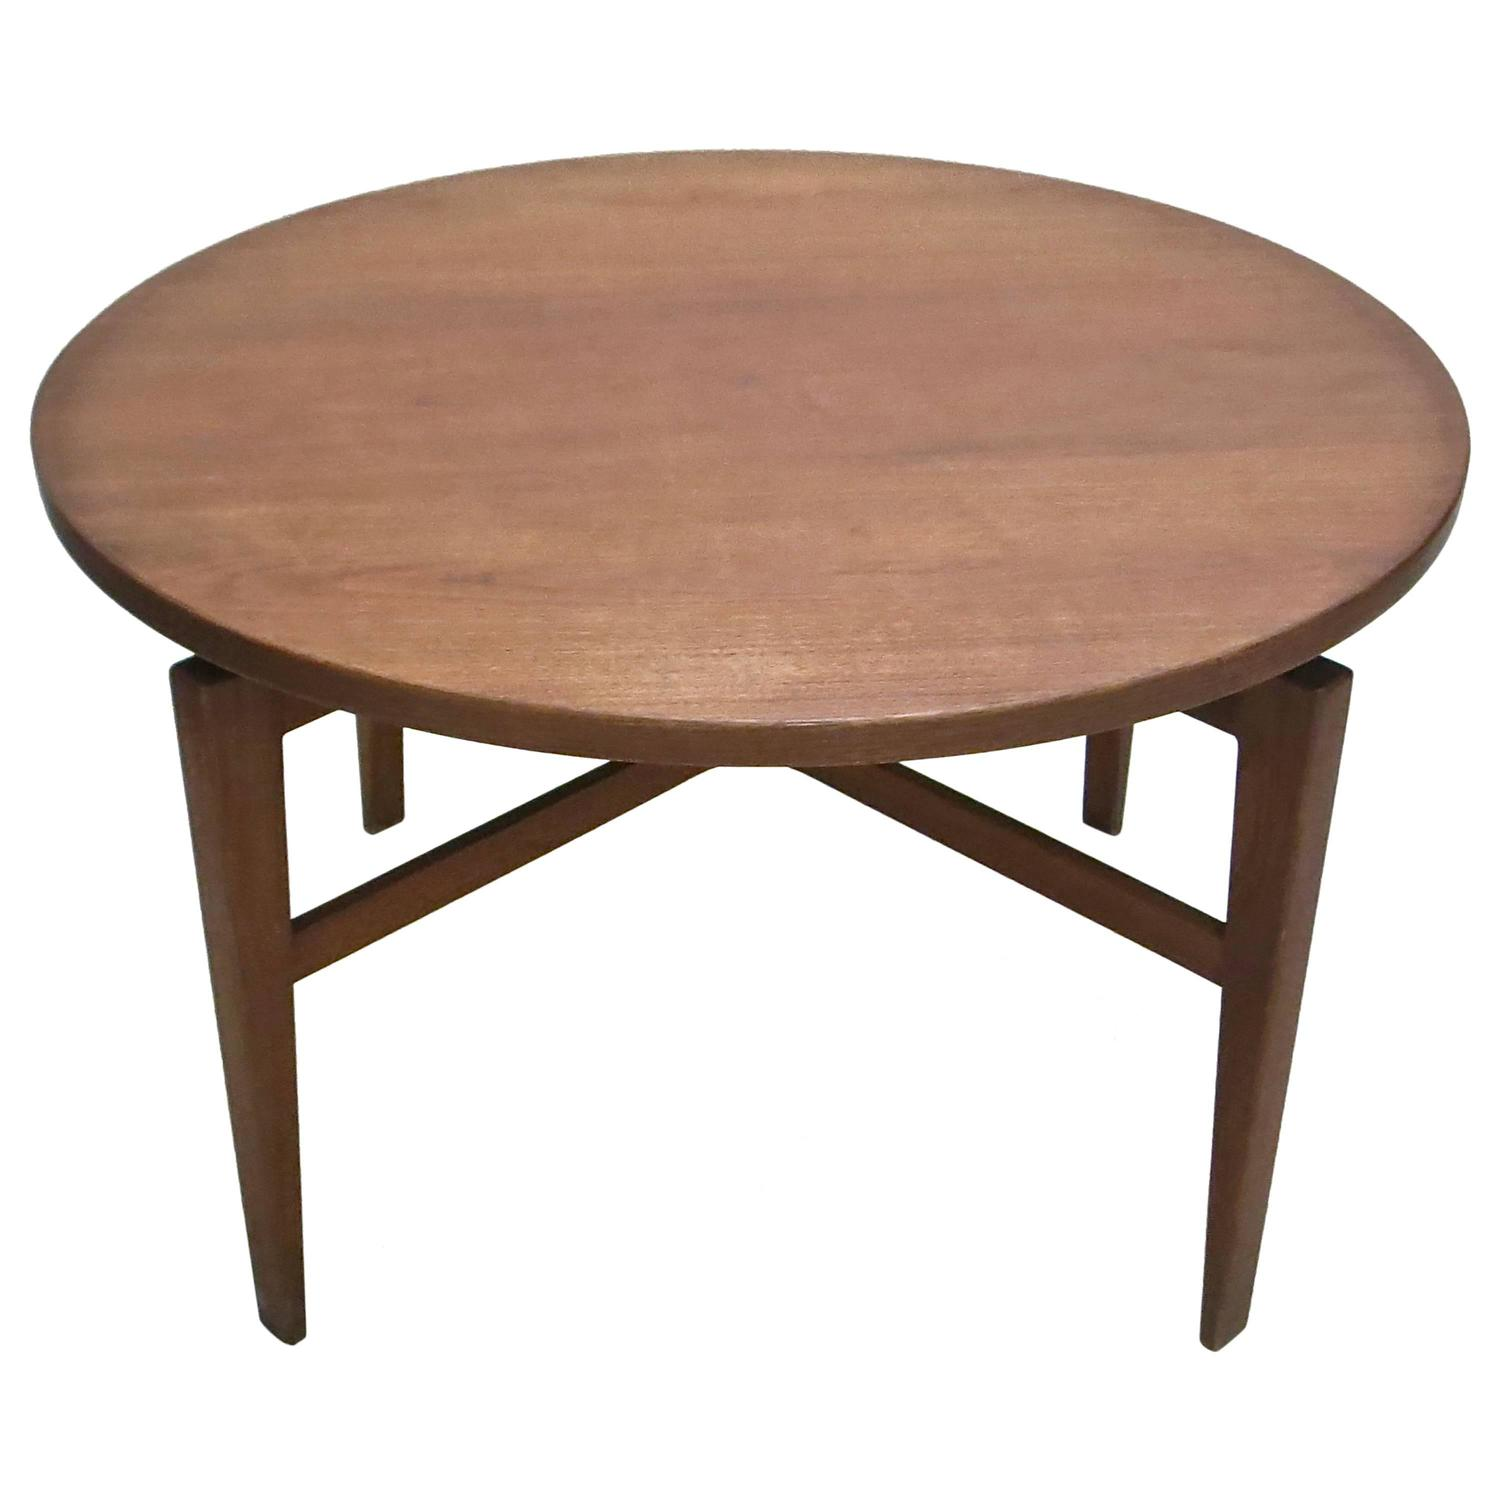 Rotating table by jens risom circa 1950 original for Rotating dining table